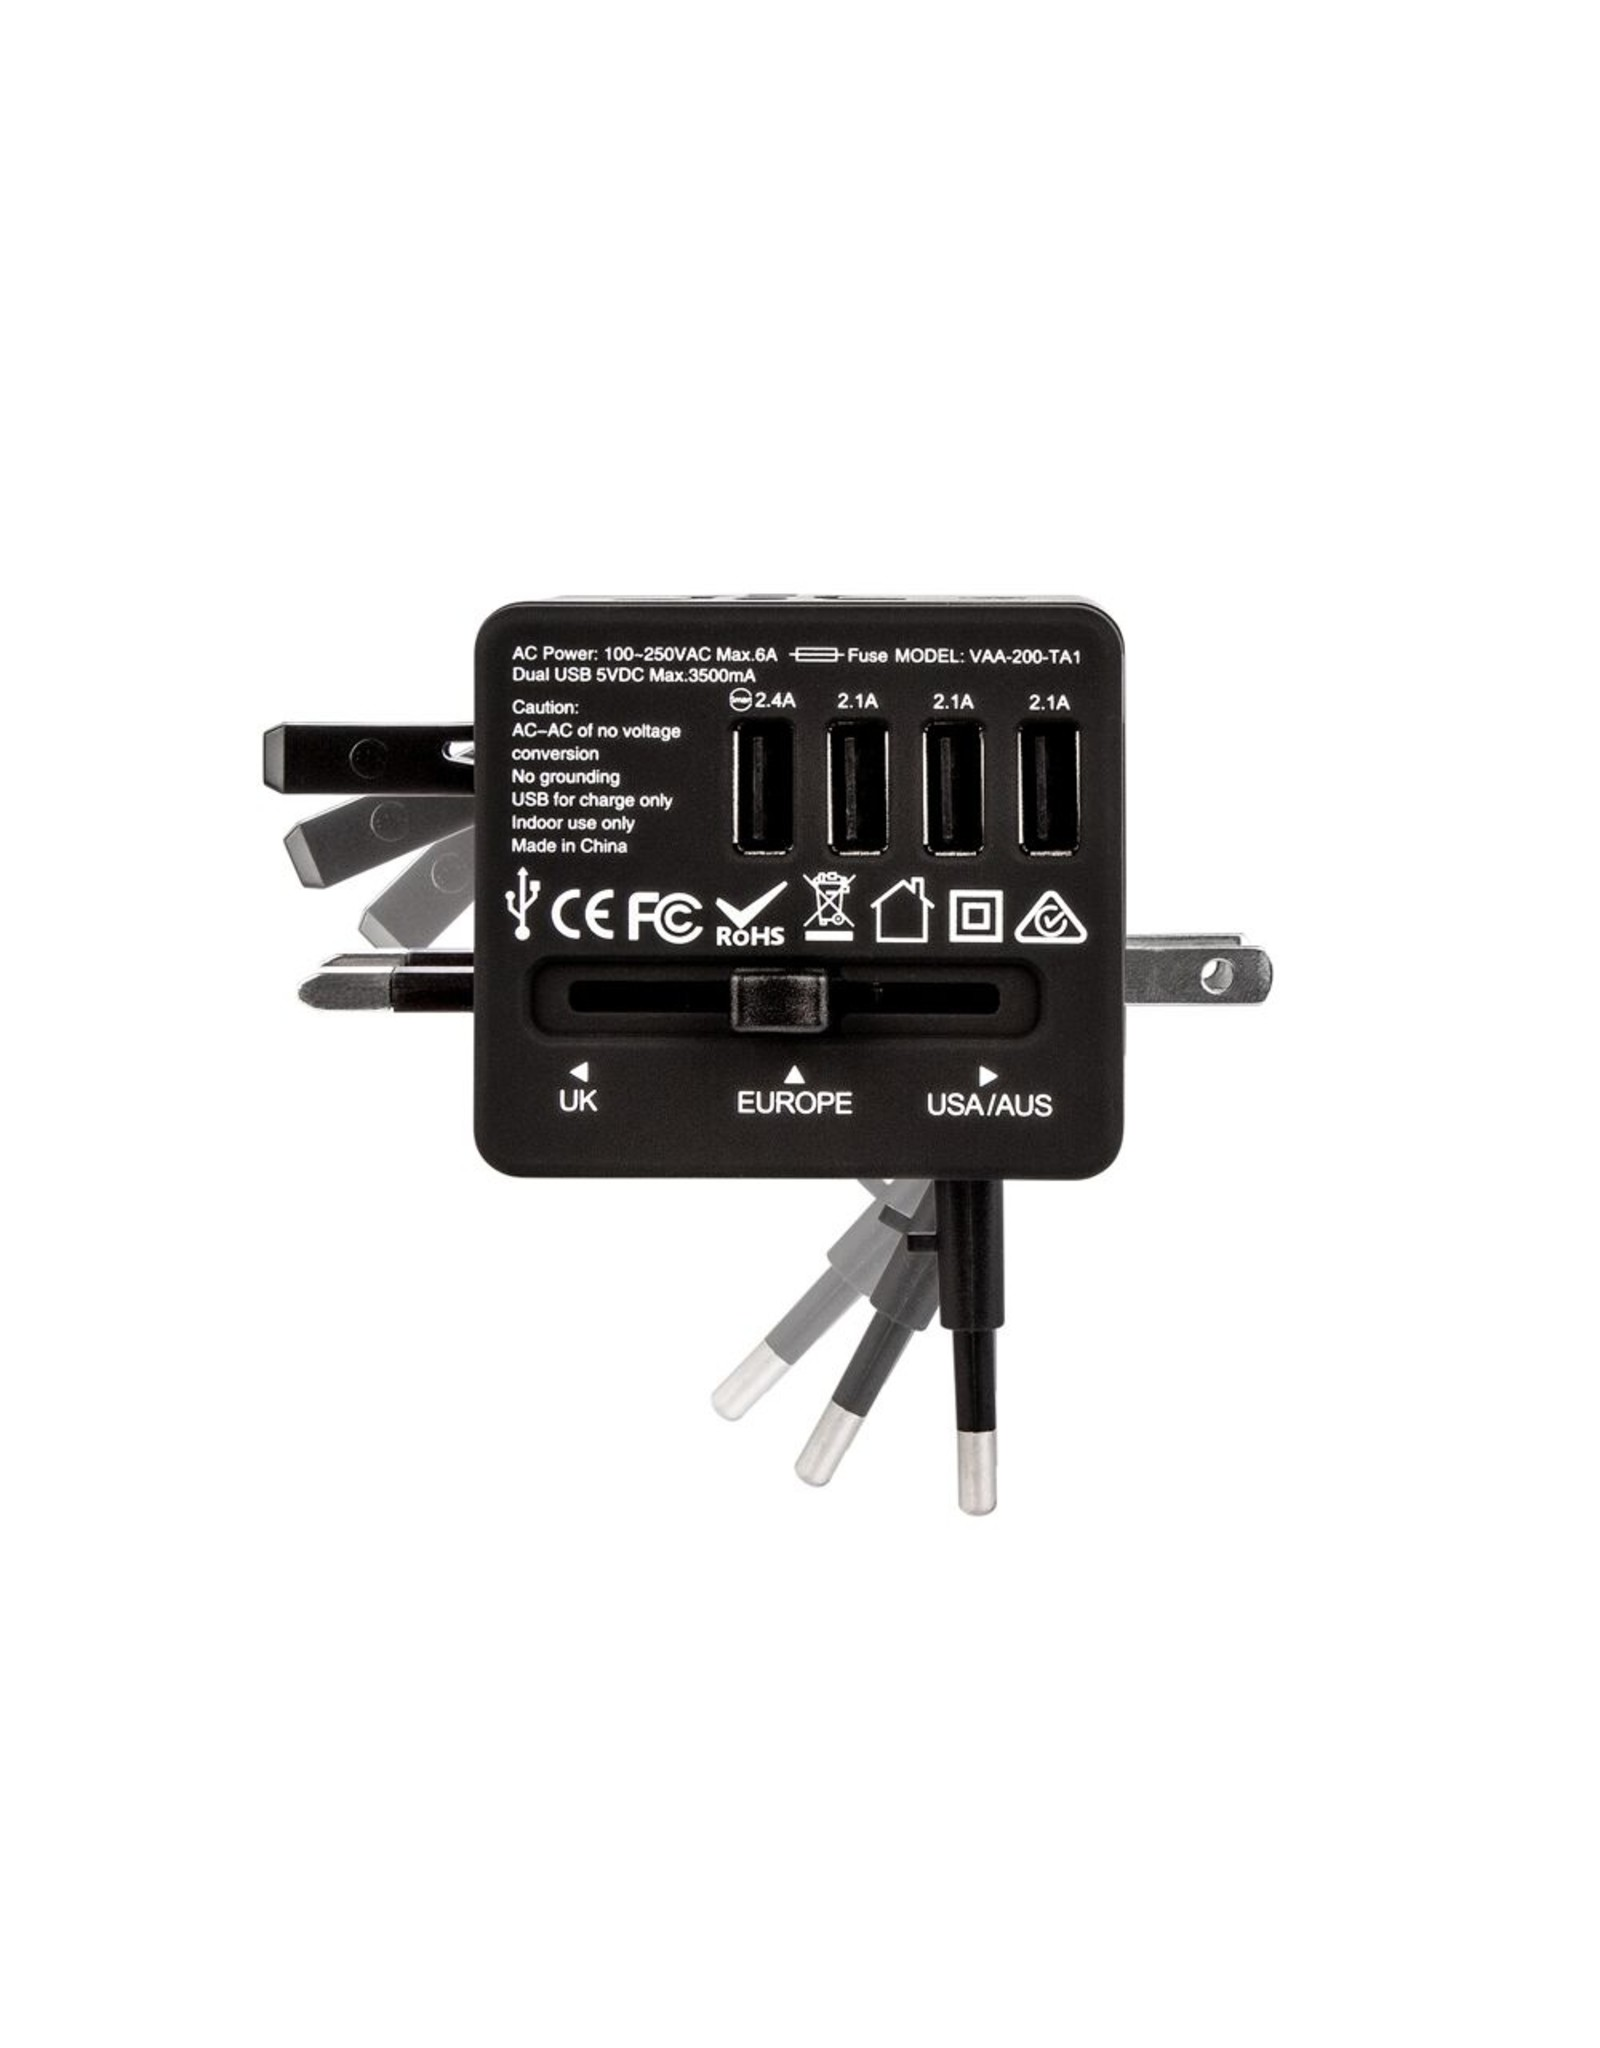 Veho Veho TA-1 Universal 4-Port World Travel Plug